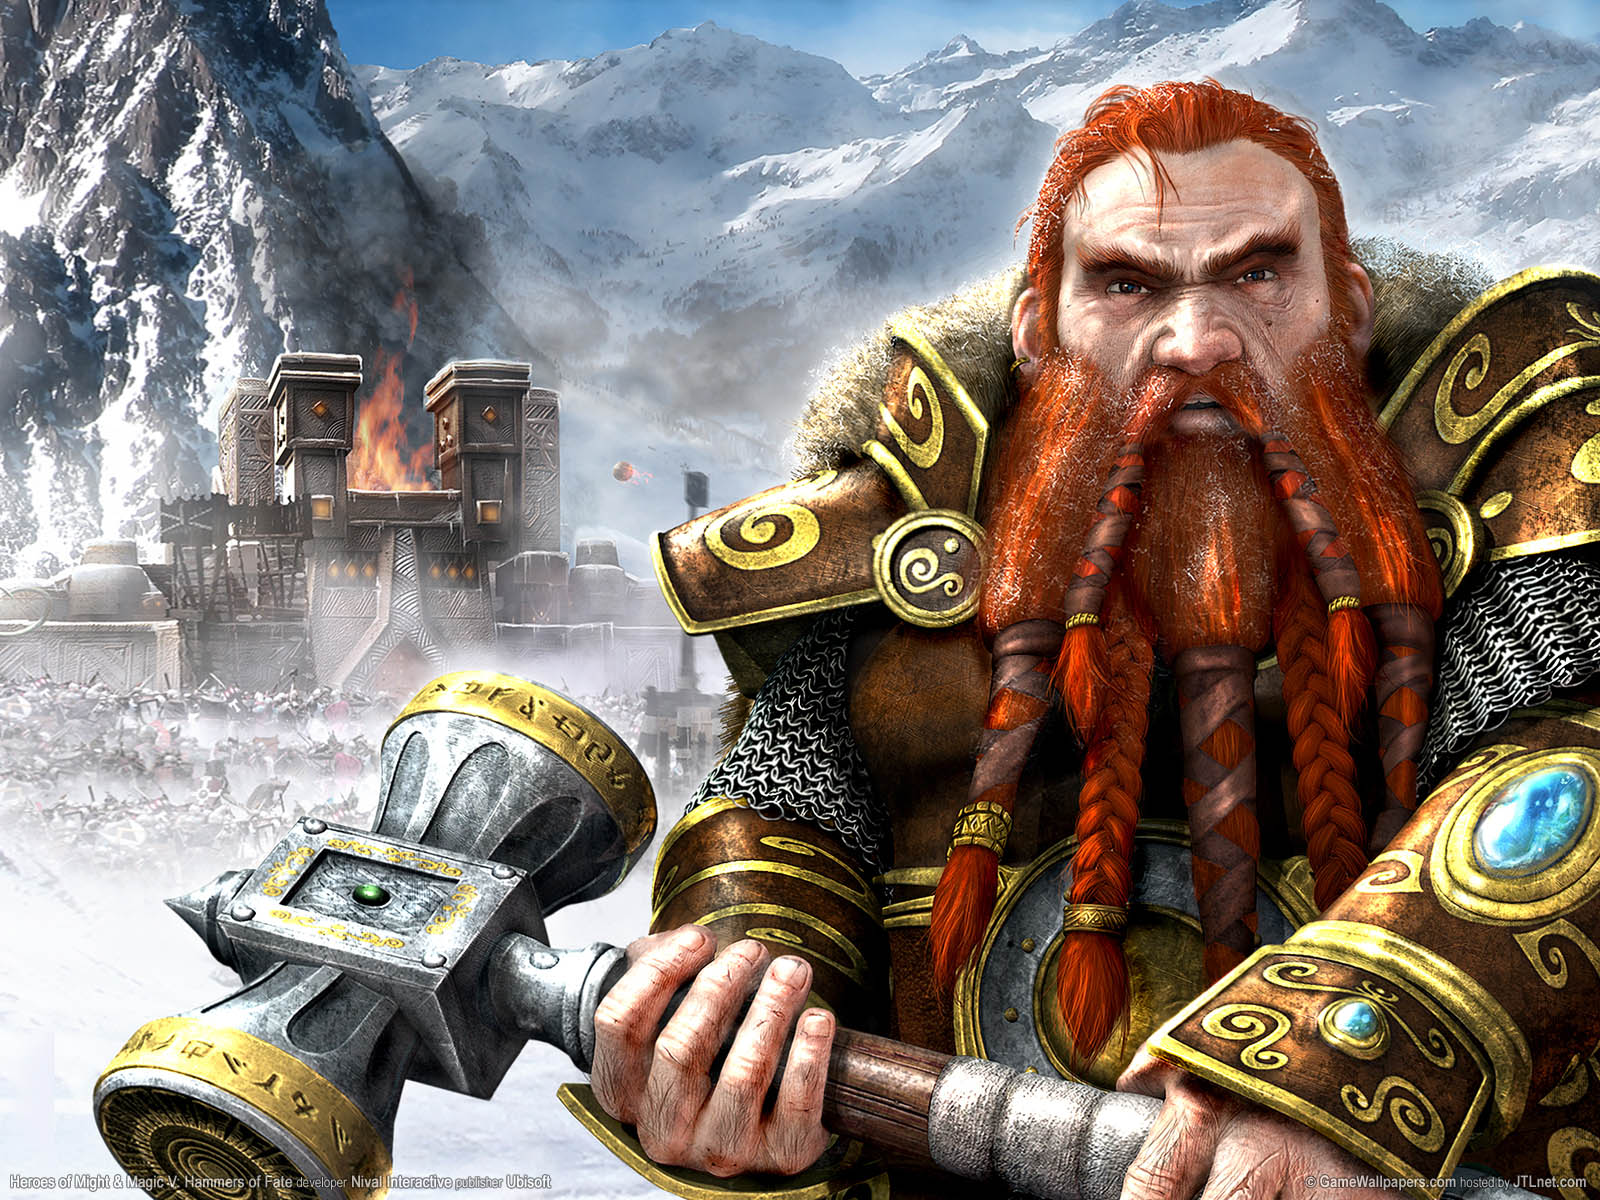 Heroes_of_Might_and_Magic_5_-_Hammers_of_Fate_Animated_Dwarf.jpg